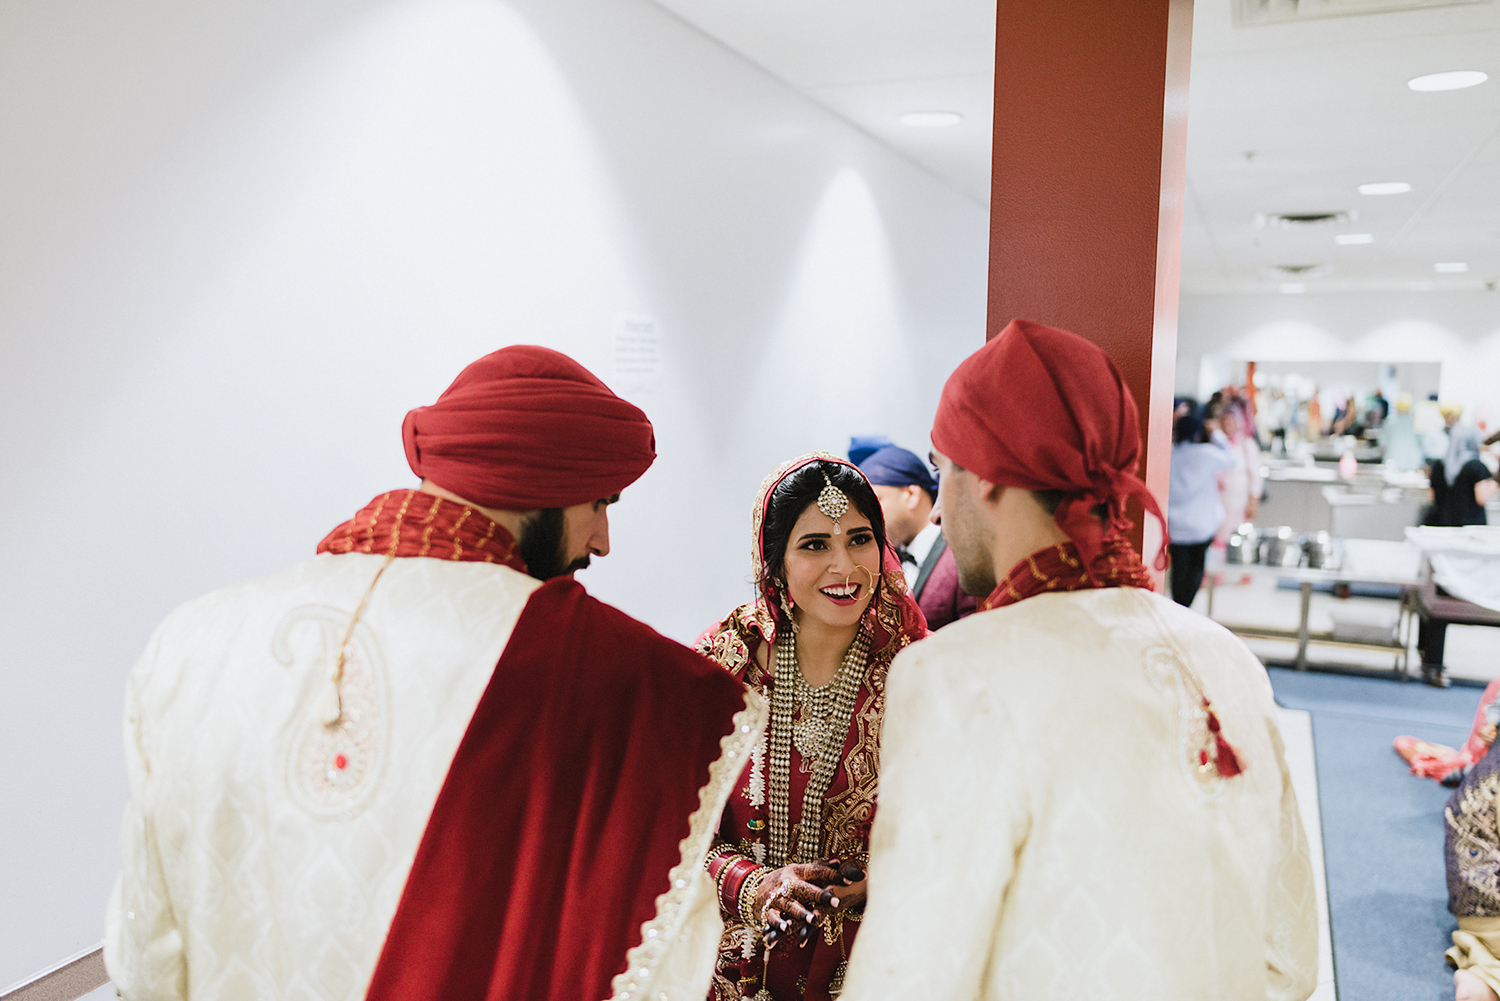 Toronto-Photojournalism-wedding-photographers-3B-Photography-Candid-Documentary-Film-Photography-Analog-Ontario-Hamilton-Port-Perry-Venue-temple-ceremony-sikh-tradition-bride-and-groom-just-married.jpg